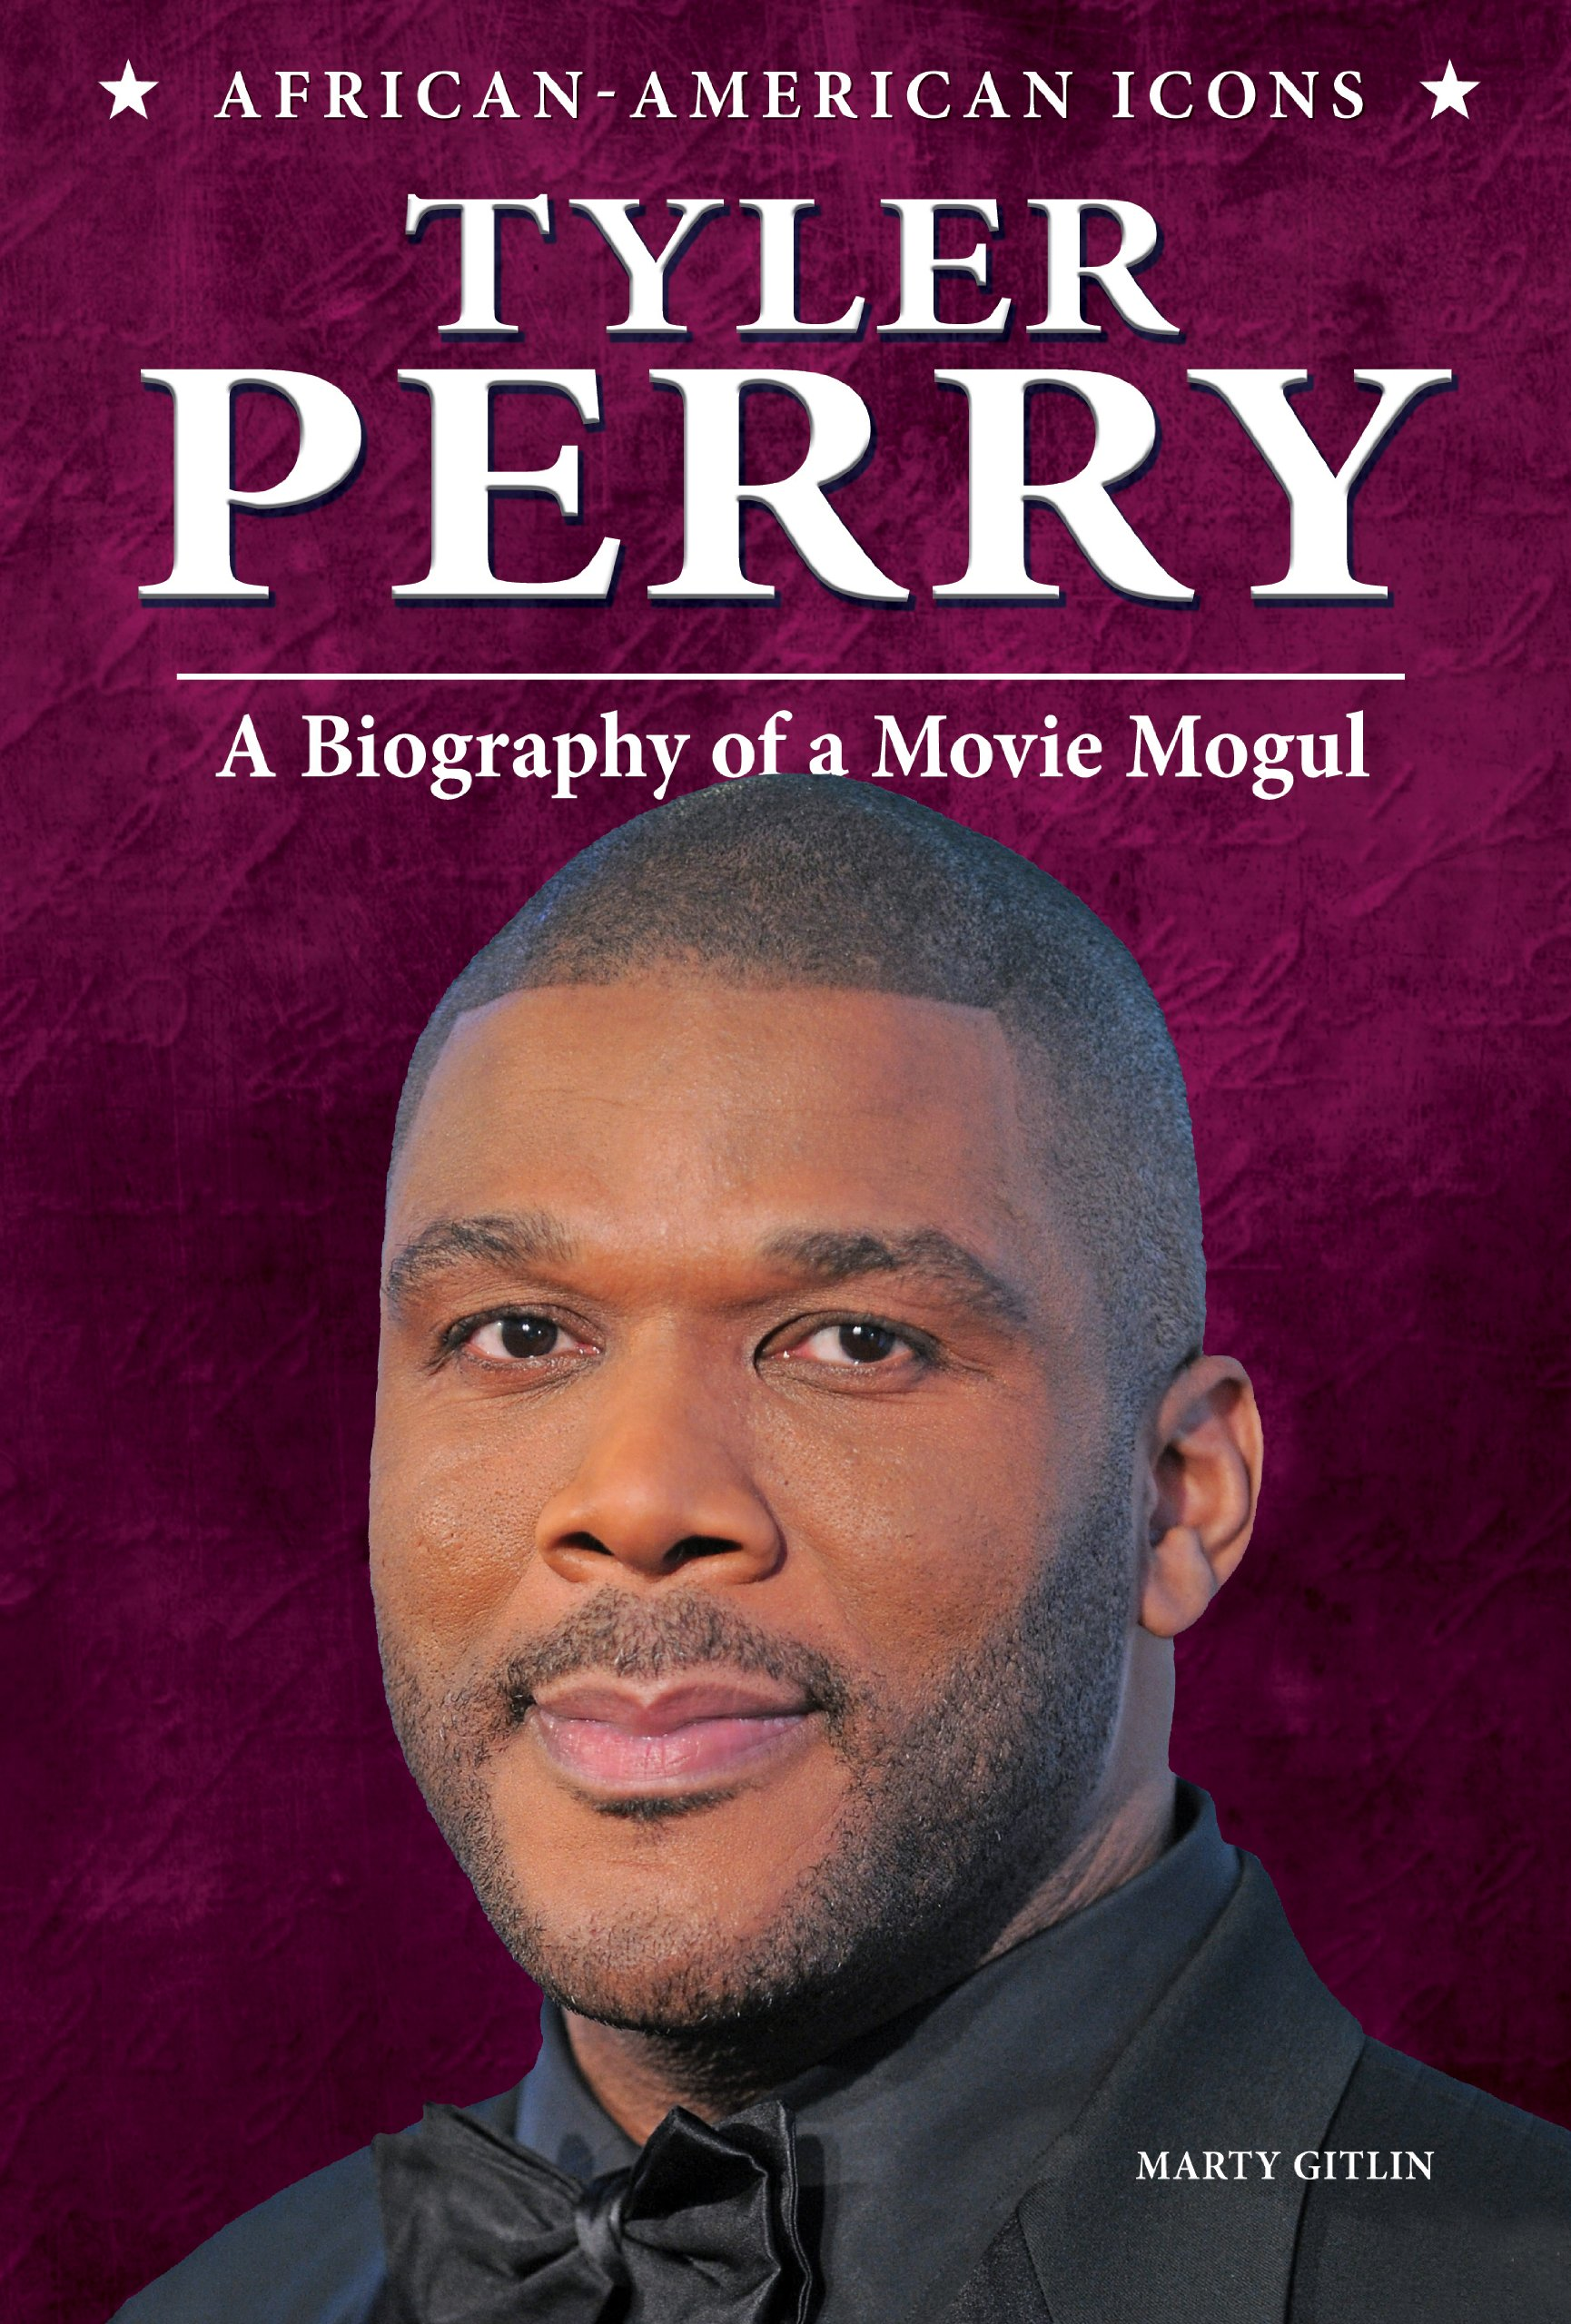 Tyler Perry: A Biography of a Movie Mogul (African-American Icons)